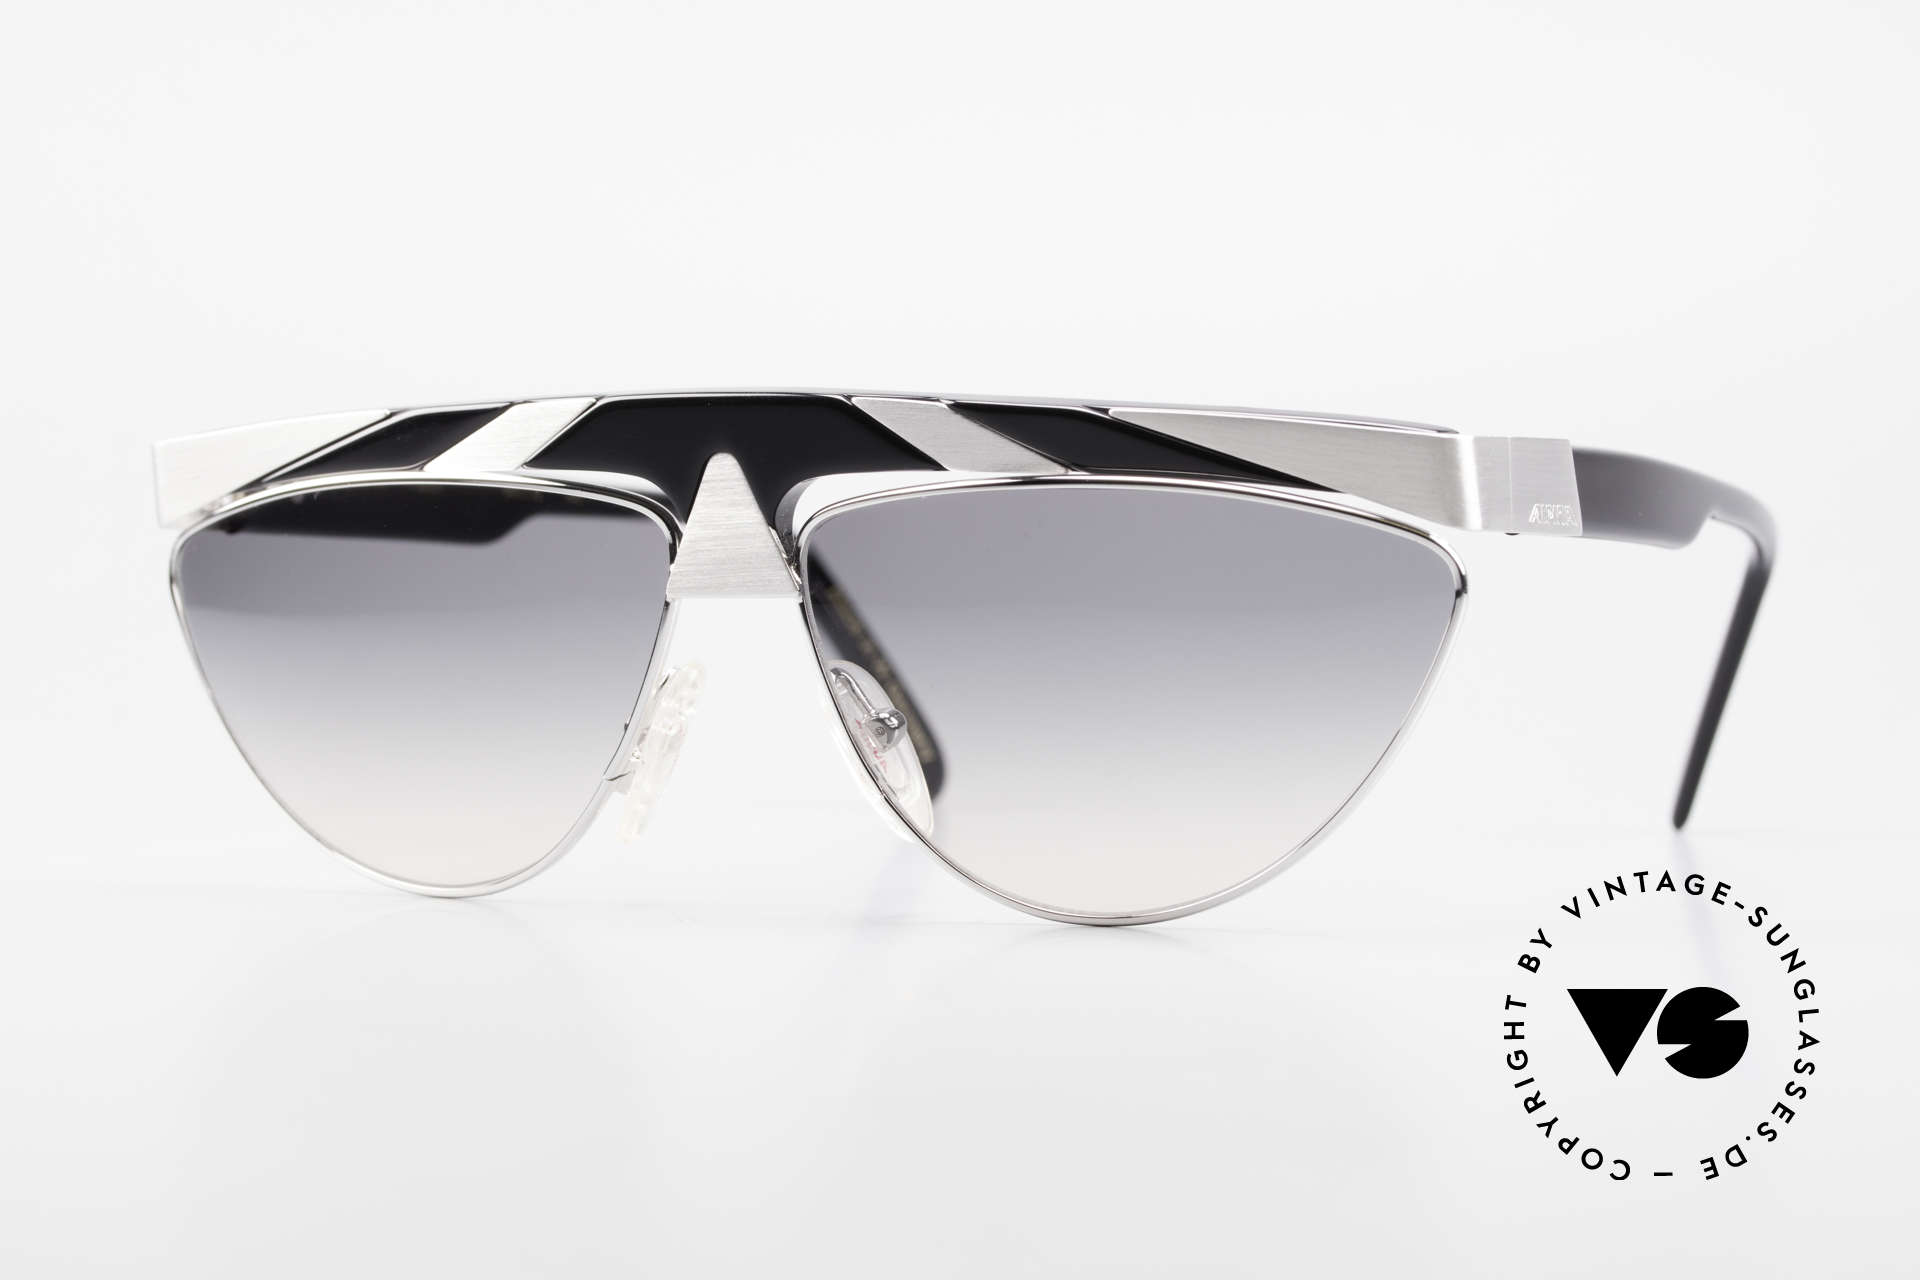 Alpina G85 Genesis Project 80's Shades, vintage model from the 'Genesis Project' by Alpina, Made for Men and Women